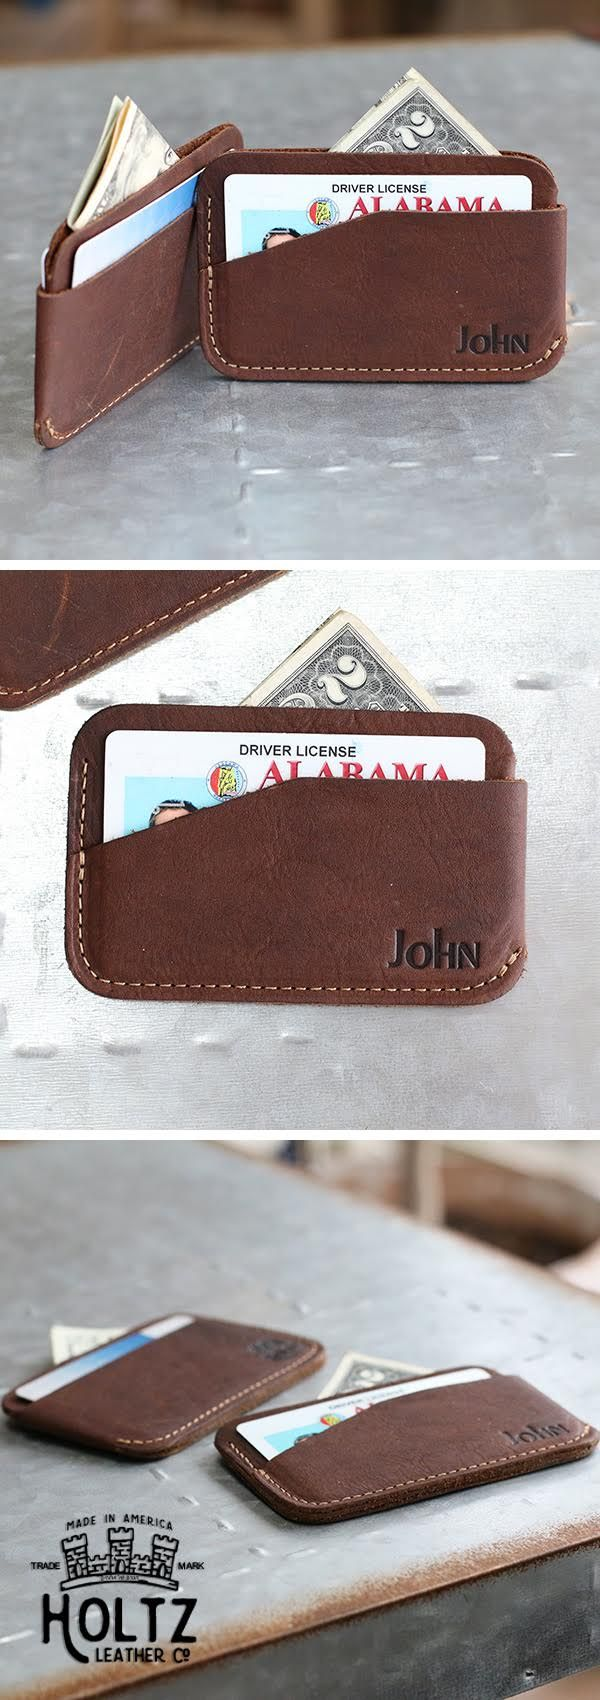 "The ""Charleston"" Front Pocket Tri-Pocket Wallet - Made in Sweet Home Alabama USA - Full Grain American Leather - Personalized for that special touch - Graduation, Wedding, Birthday, Fathers Day Gift"